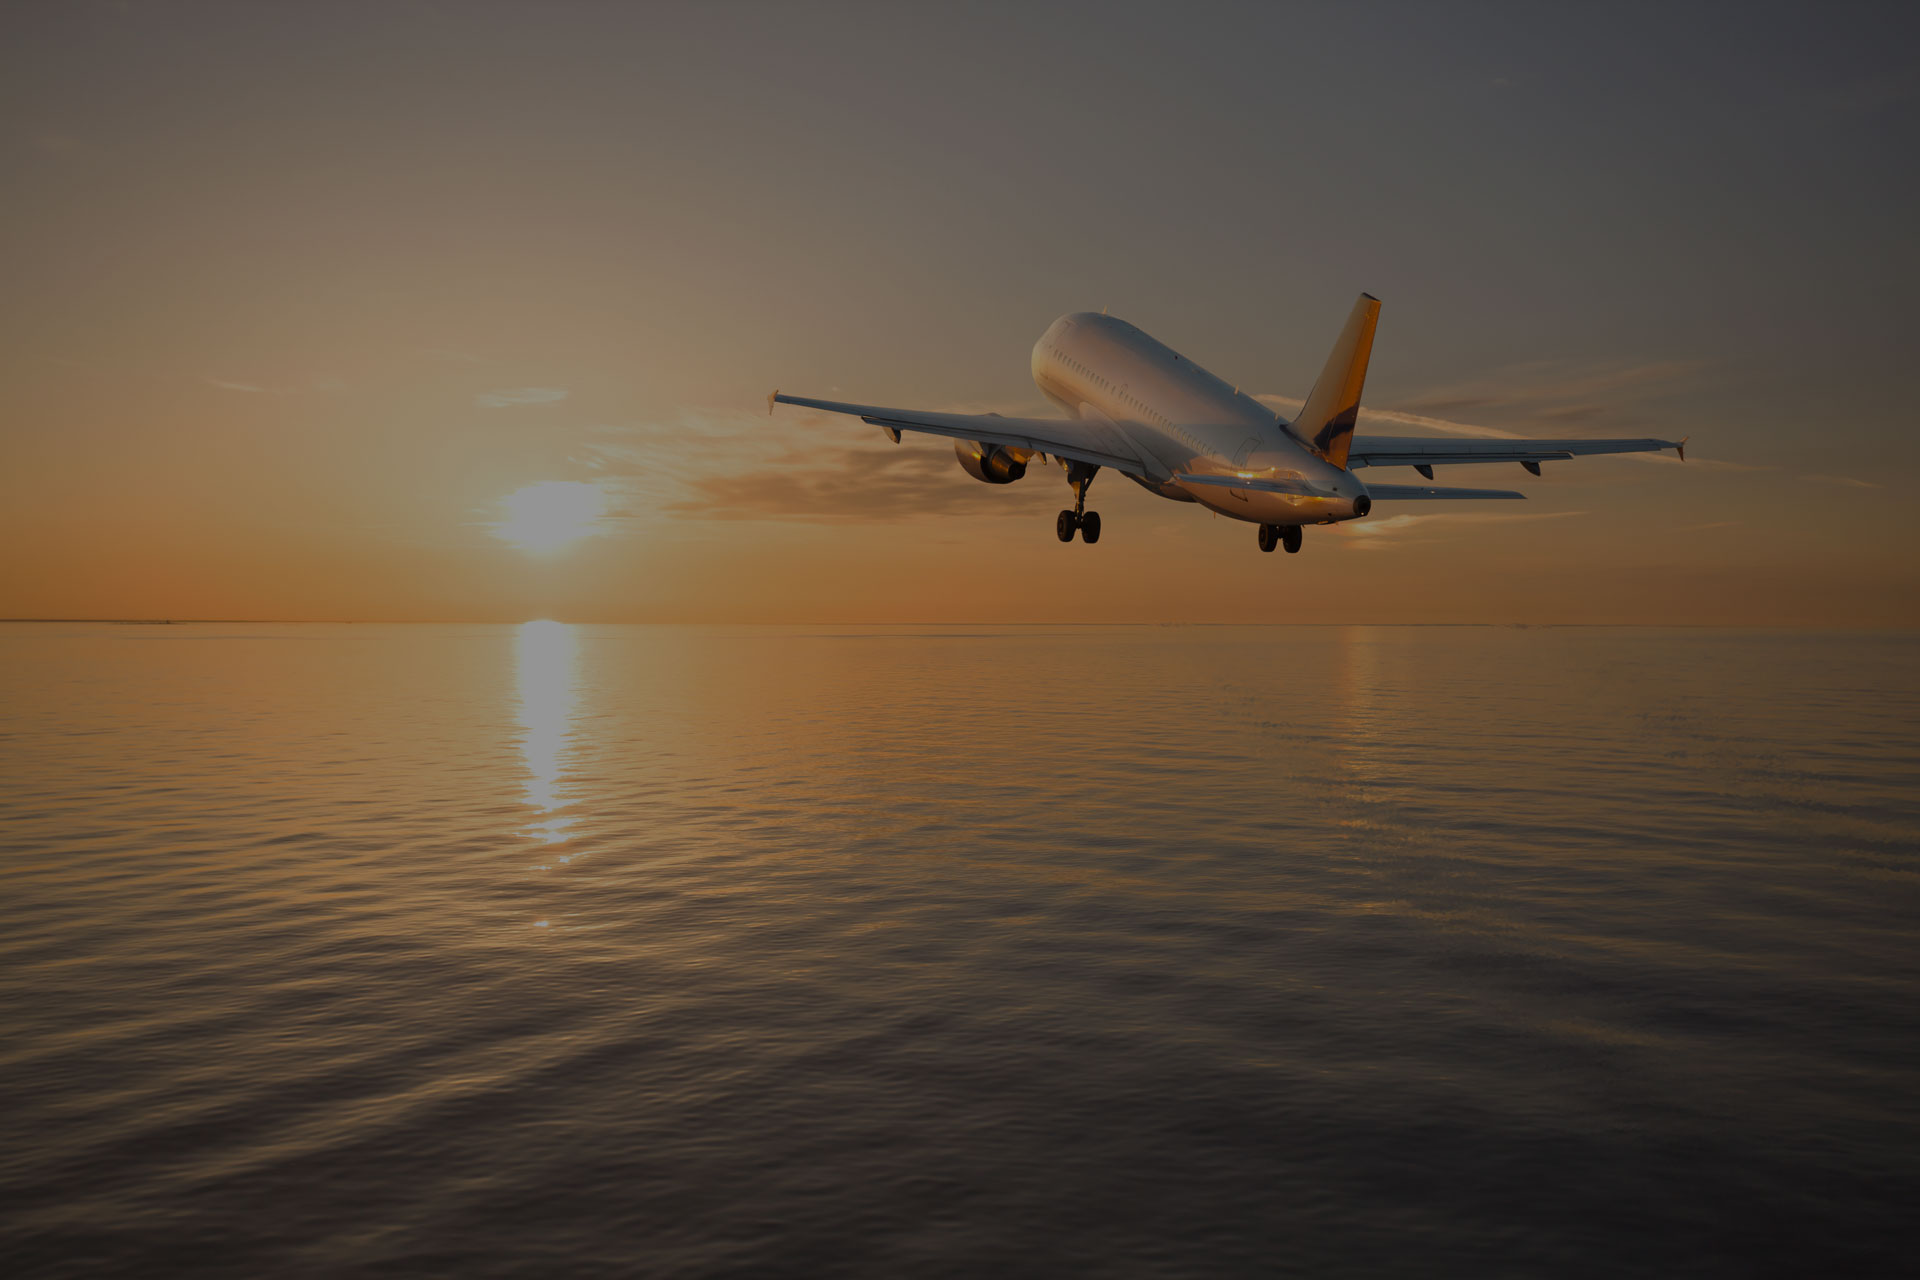 Aeroplane flying over ocean